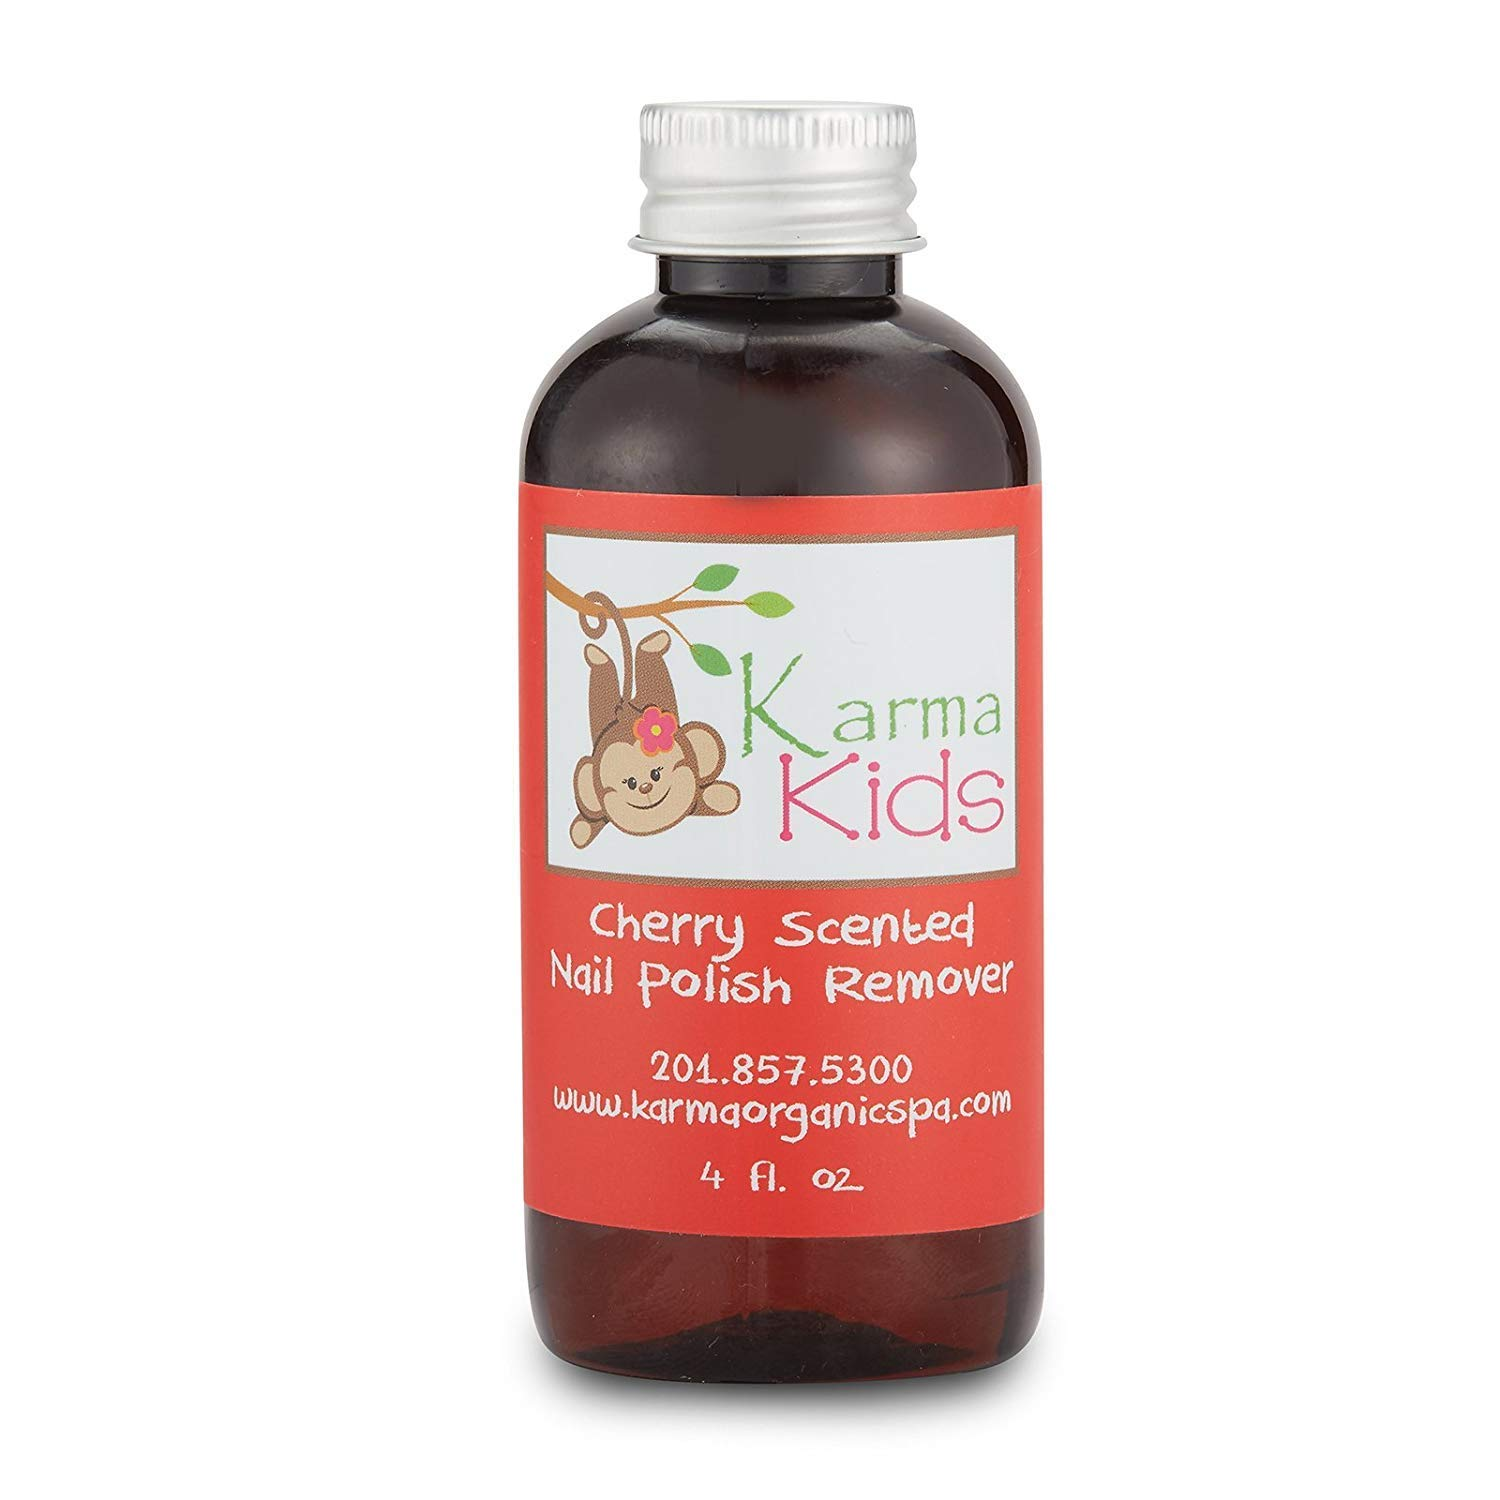 Karma Organic Natural kids nail polish remover Cherry Scented- Non Toxic, Vegan, Cruelty Free, Acetone free – Nails Strengthener for Fingernails – 4 fl. Oz.